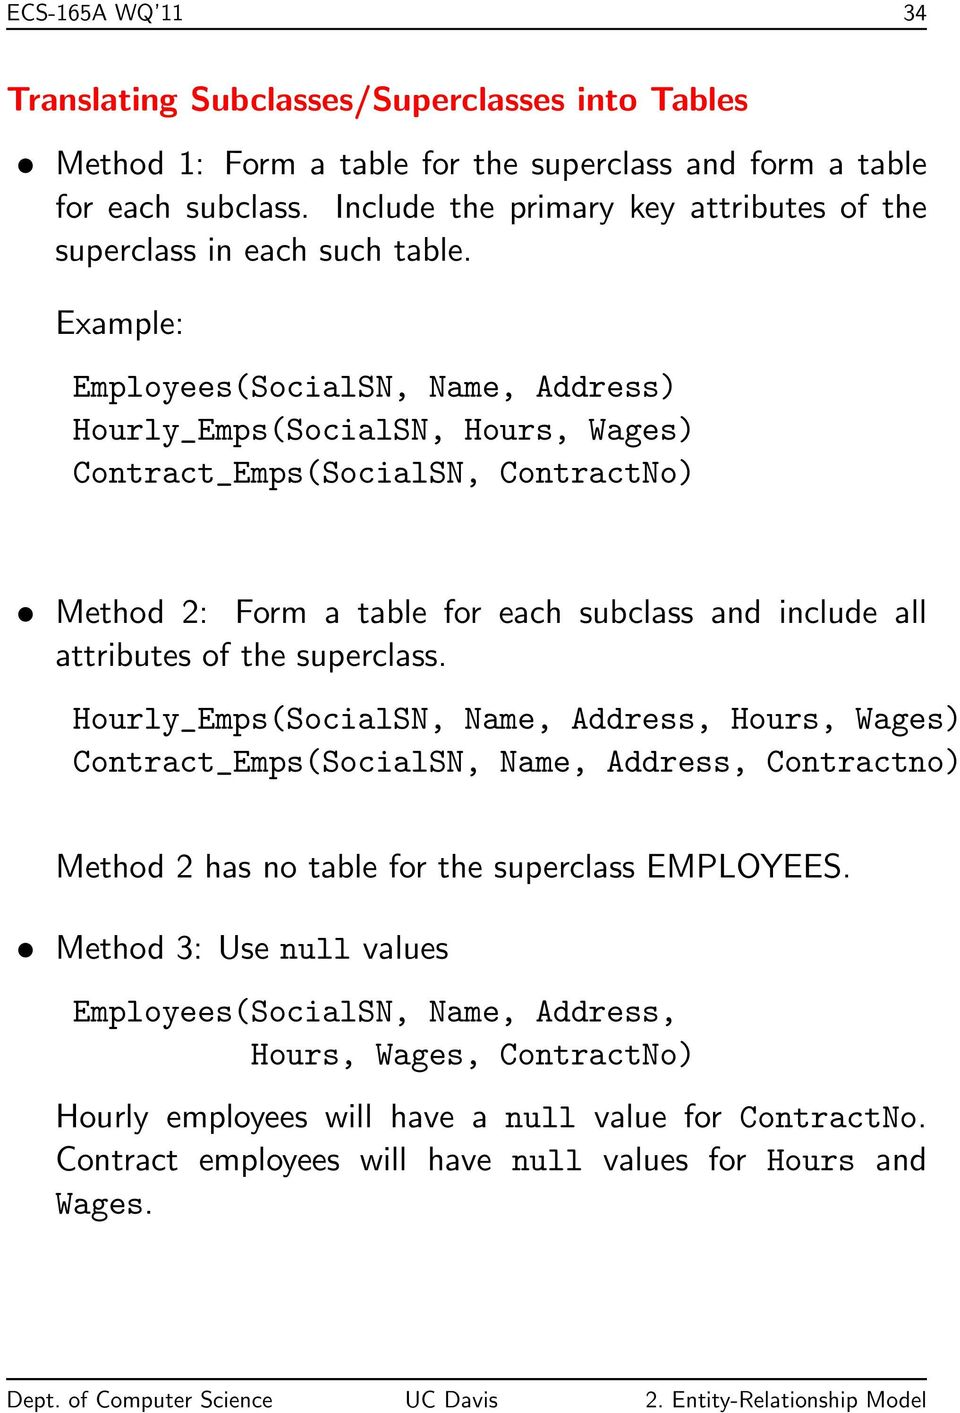 Example: Employees(SocialSN, Name, Address) Hourly_Emps(SocialSN, Hours, Wages) Contract_Emps(SocialSN, ContractNo) Method 2: Form a table for each subclass and include all attributes of the